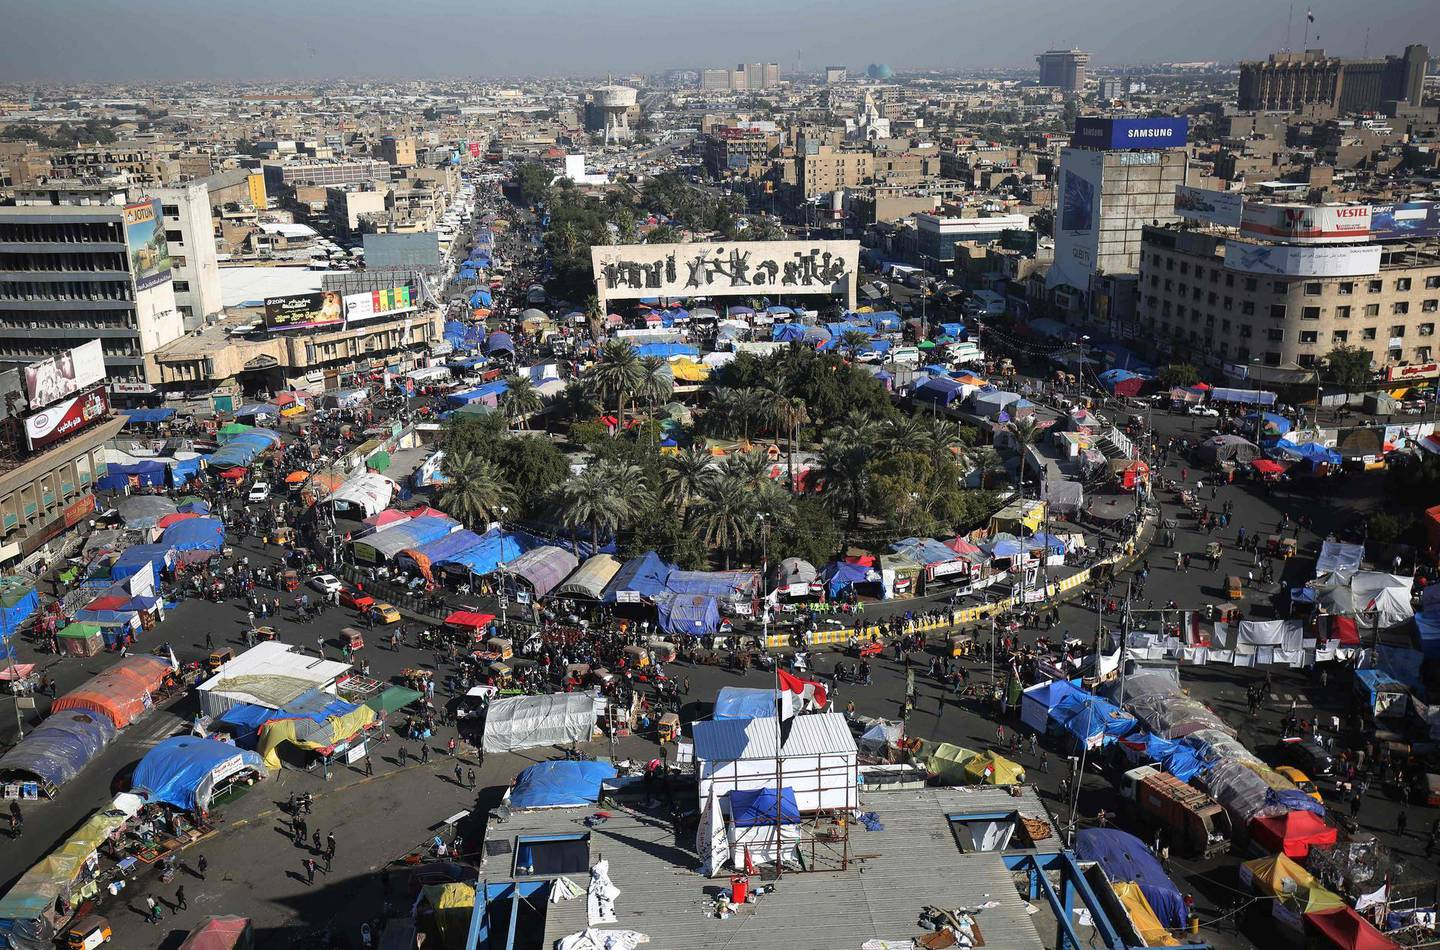 """TOPSHOT - Iraqi demonstrators gather at Tahrir square in the capital Baghdad on December 20, 2019 during ongoing anti-government protests. Iraq's top Shiite cleric Grand Ayatollah Ali Sistani called today for early elections to end the months of political paralysis that have gripped the protest-hit country. """"The quickest and most peaceful way out of the current crisis and to avoid plunging into the unknown, chaos or internal strife ... is to rely on the people by holding early elections,"""" said a representative of Sistani, who never appears in public.  / AFP / AHMAD AL-RUBAYE"""